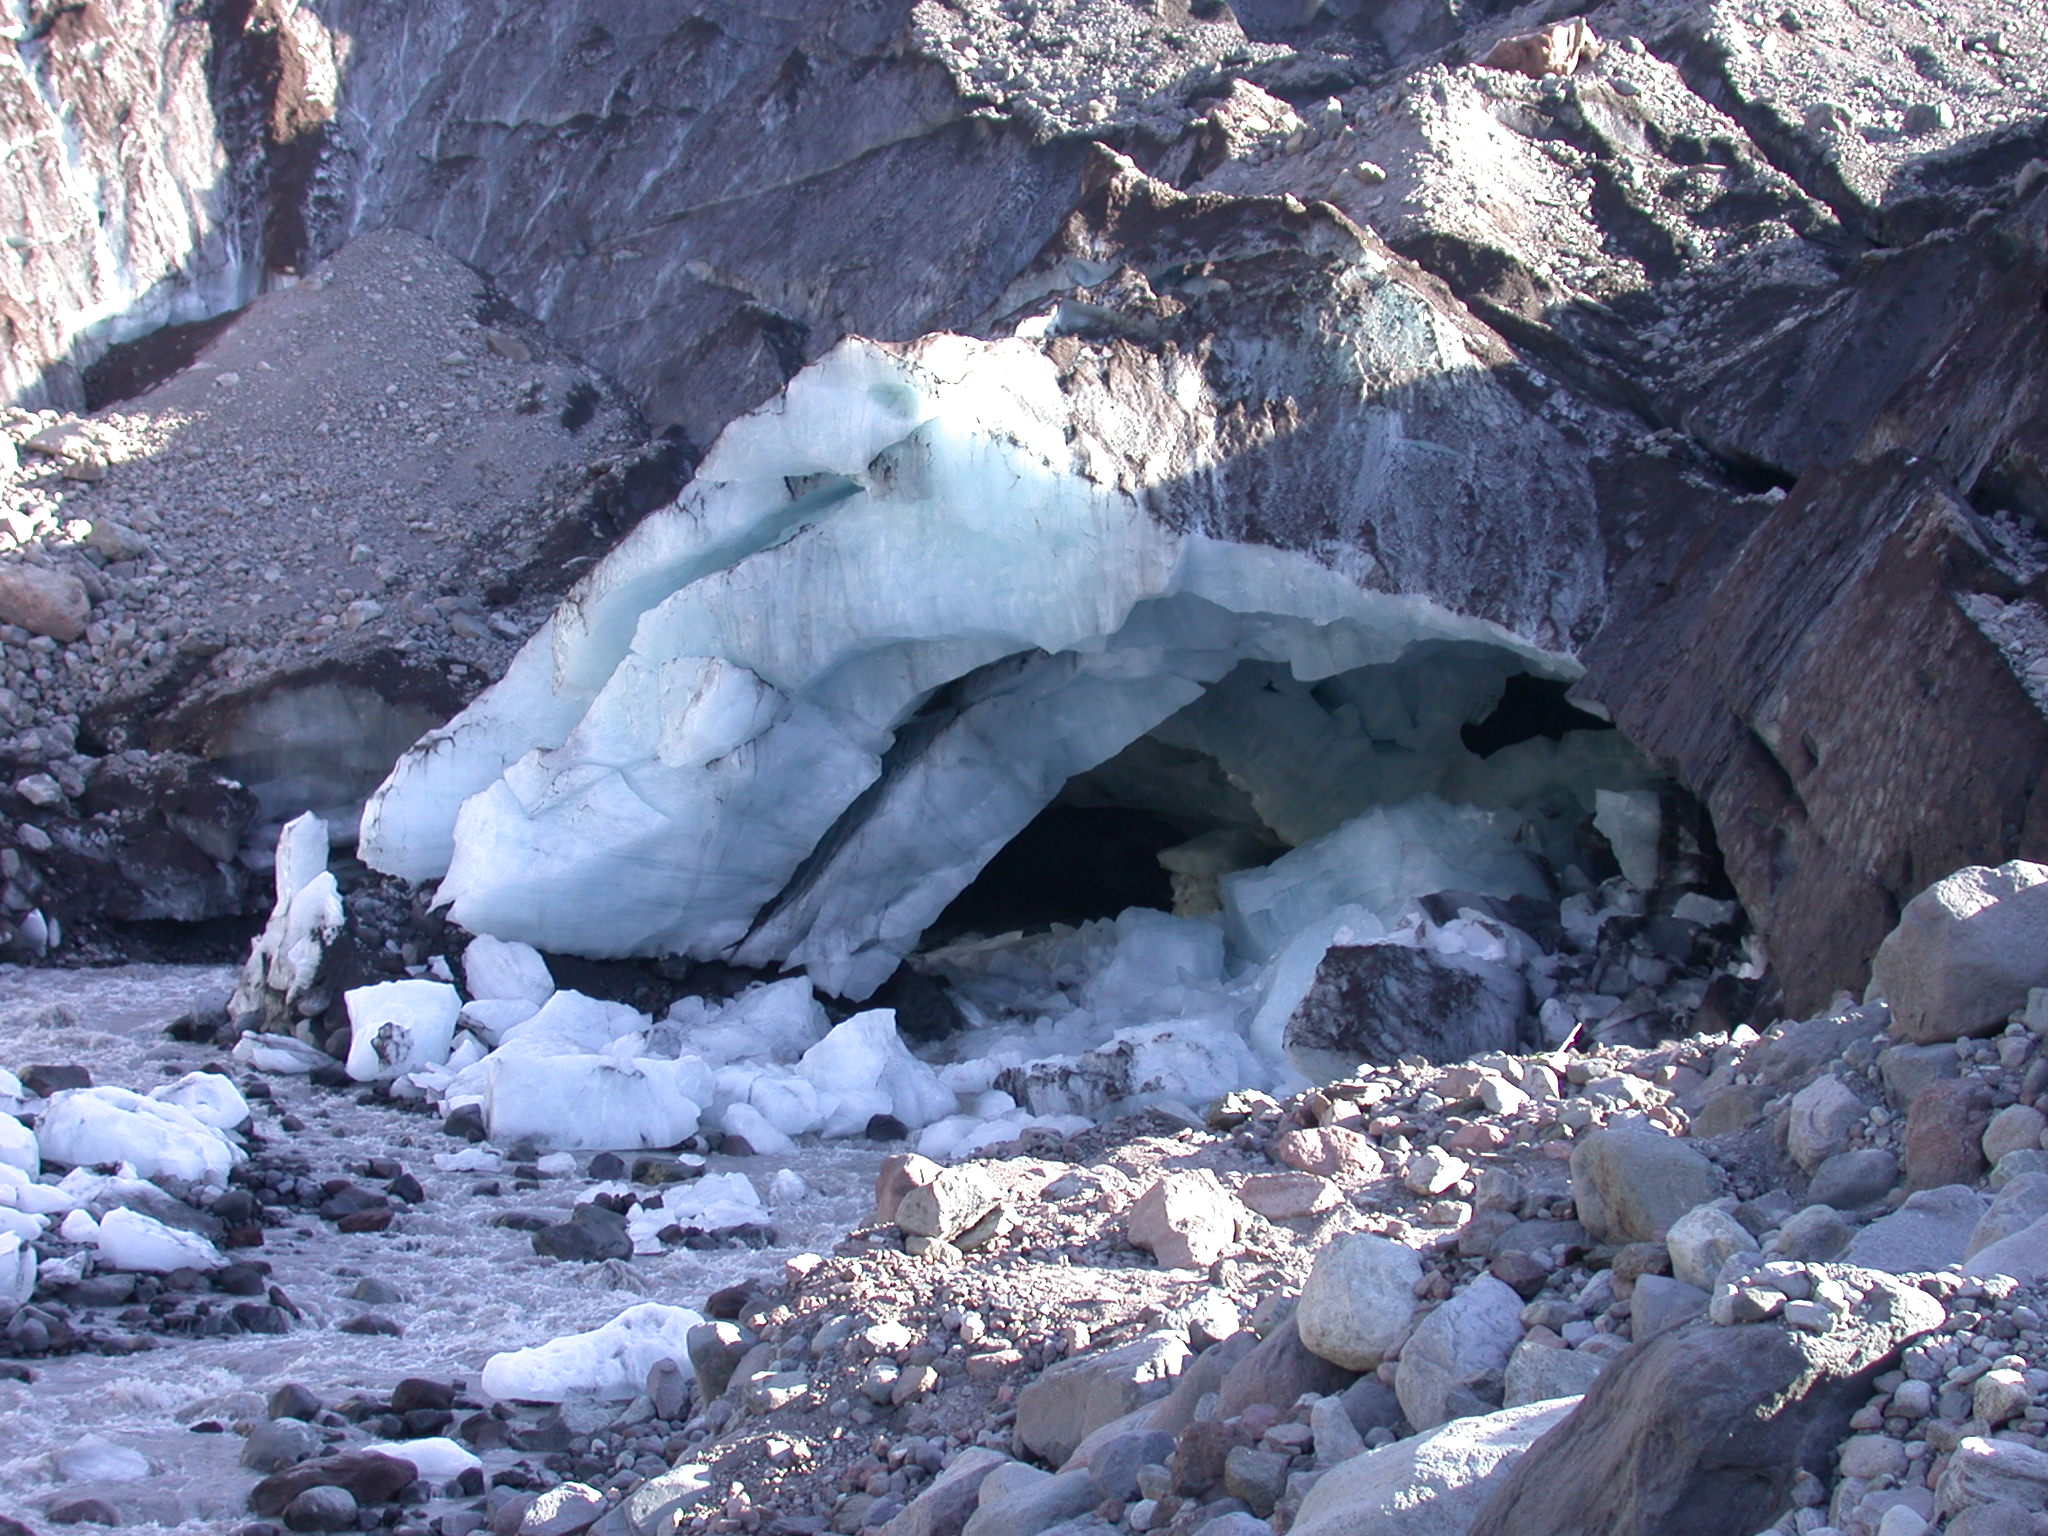 Yet Further Collapse of Ice Cave at Base of Glacier on Mount Rainier